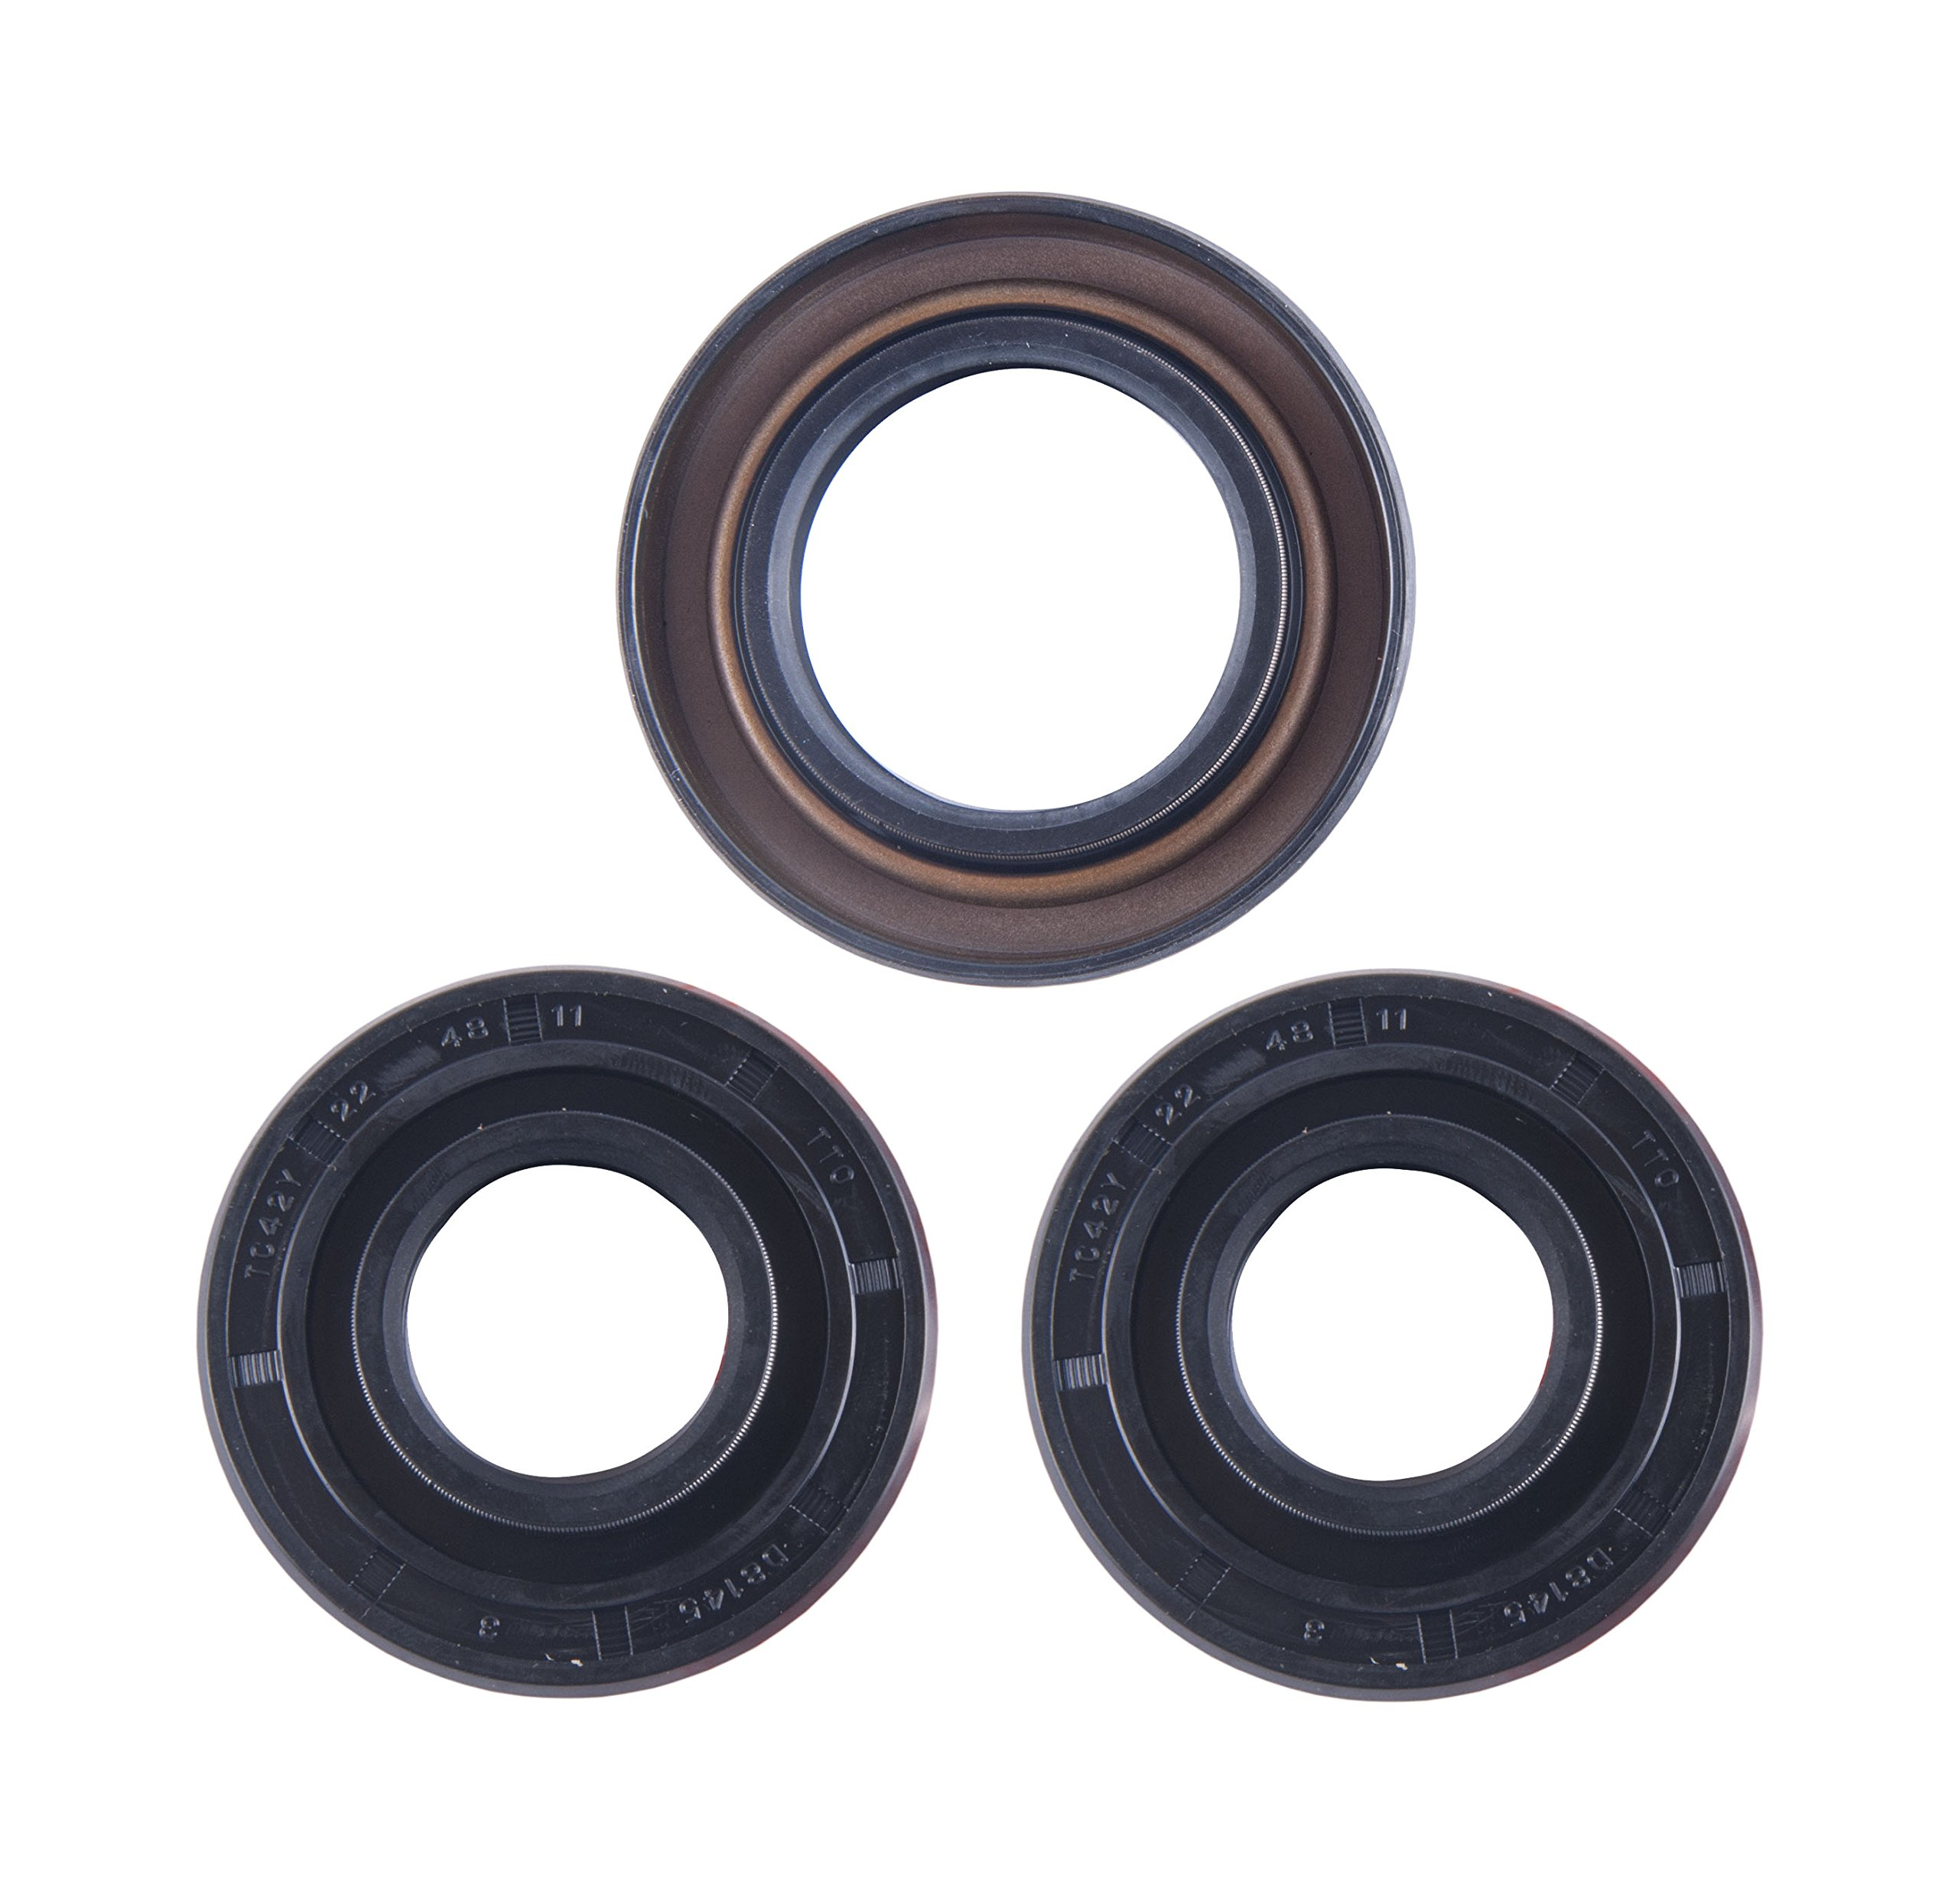 East Lake Axle Front differential seal kit compatible with Honda TRX 300 FW 1988 1989 1990 1991 1992-2000 by East Lake Axle